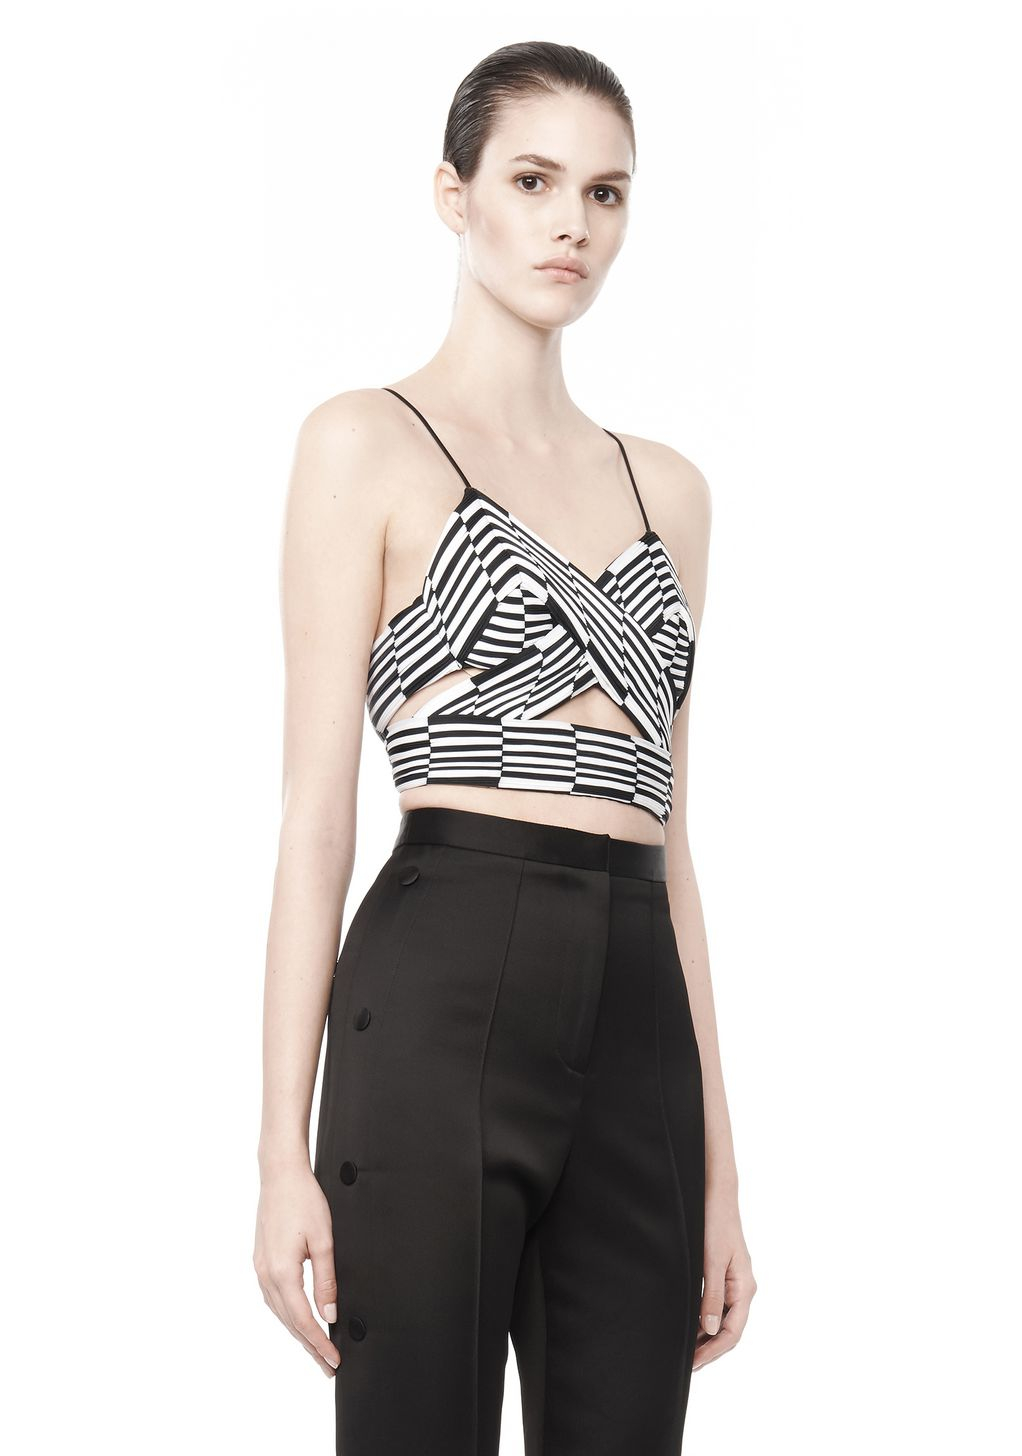 Alexander Wang Pleated Triangle Top in Black & White (Black)